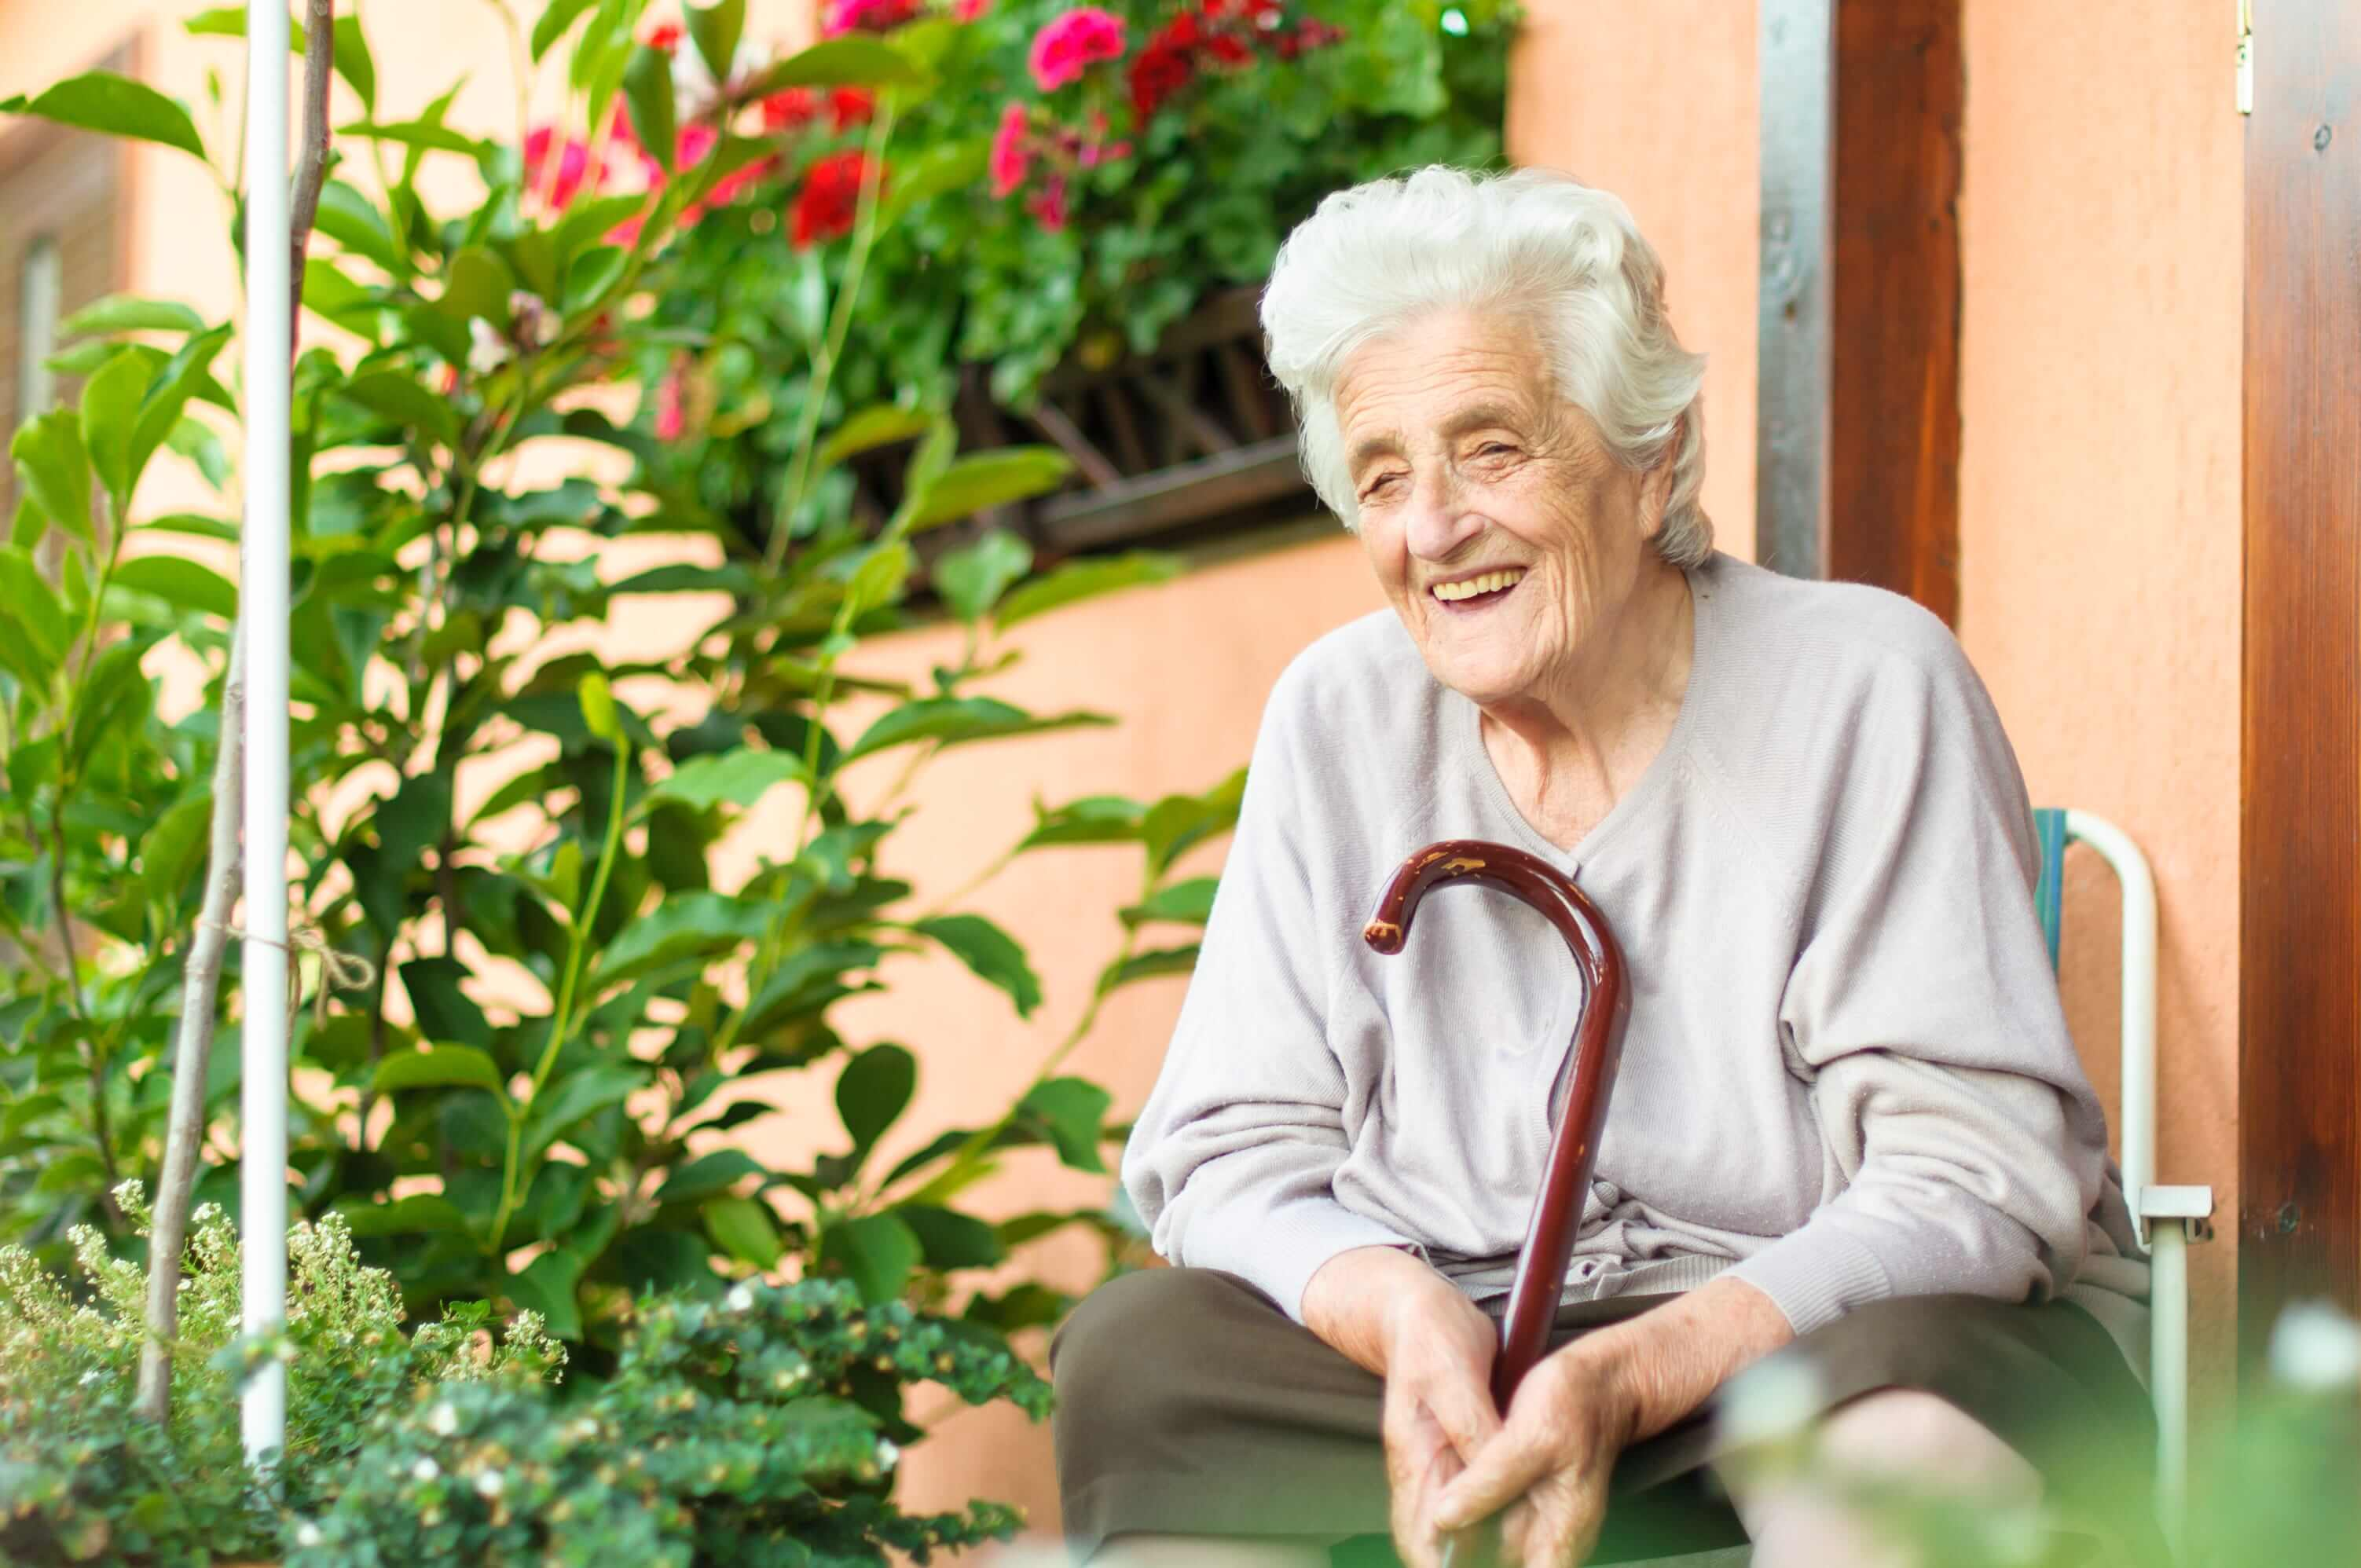 Senior woman with a walking stick sitting in her garden